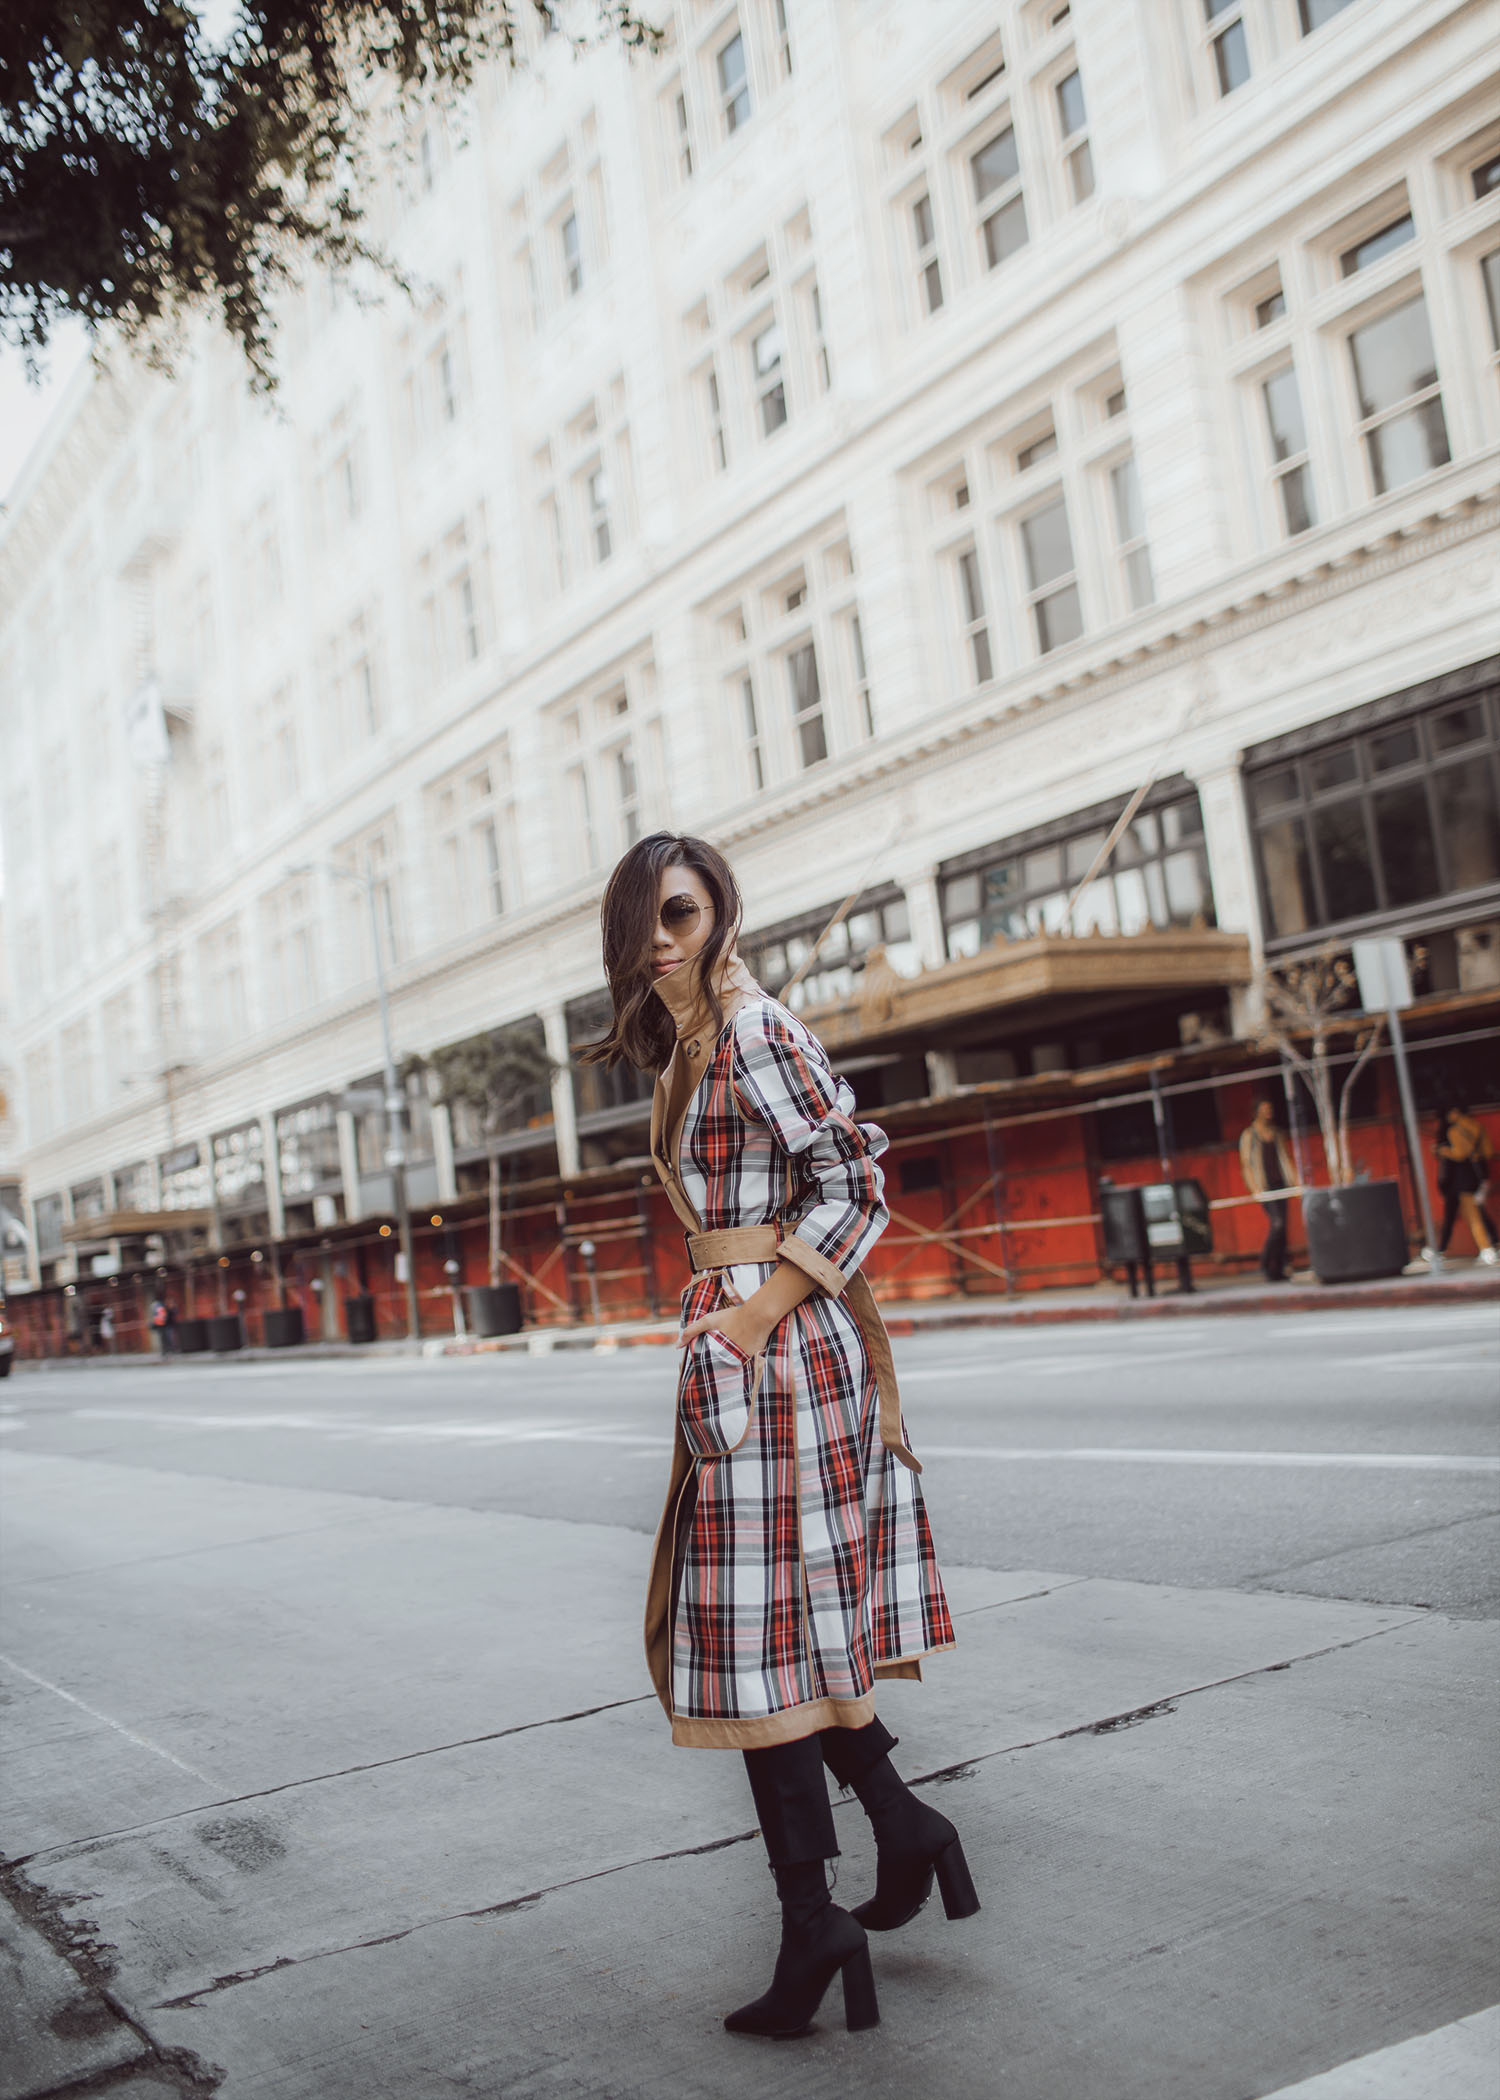 Jenny Tsang of Tsangtastic wearing uniqlo jw anderson trench coat and victoria beckham rounded sunglasses